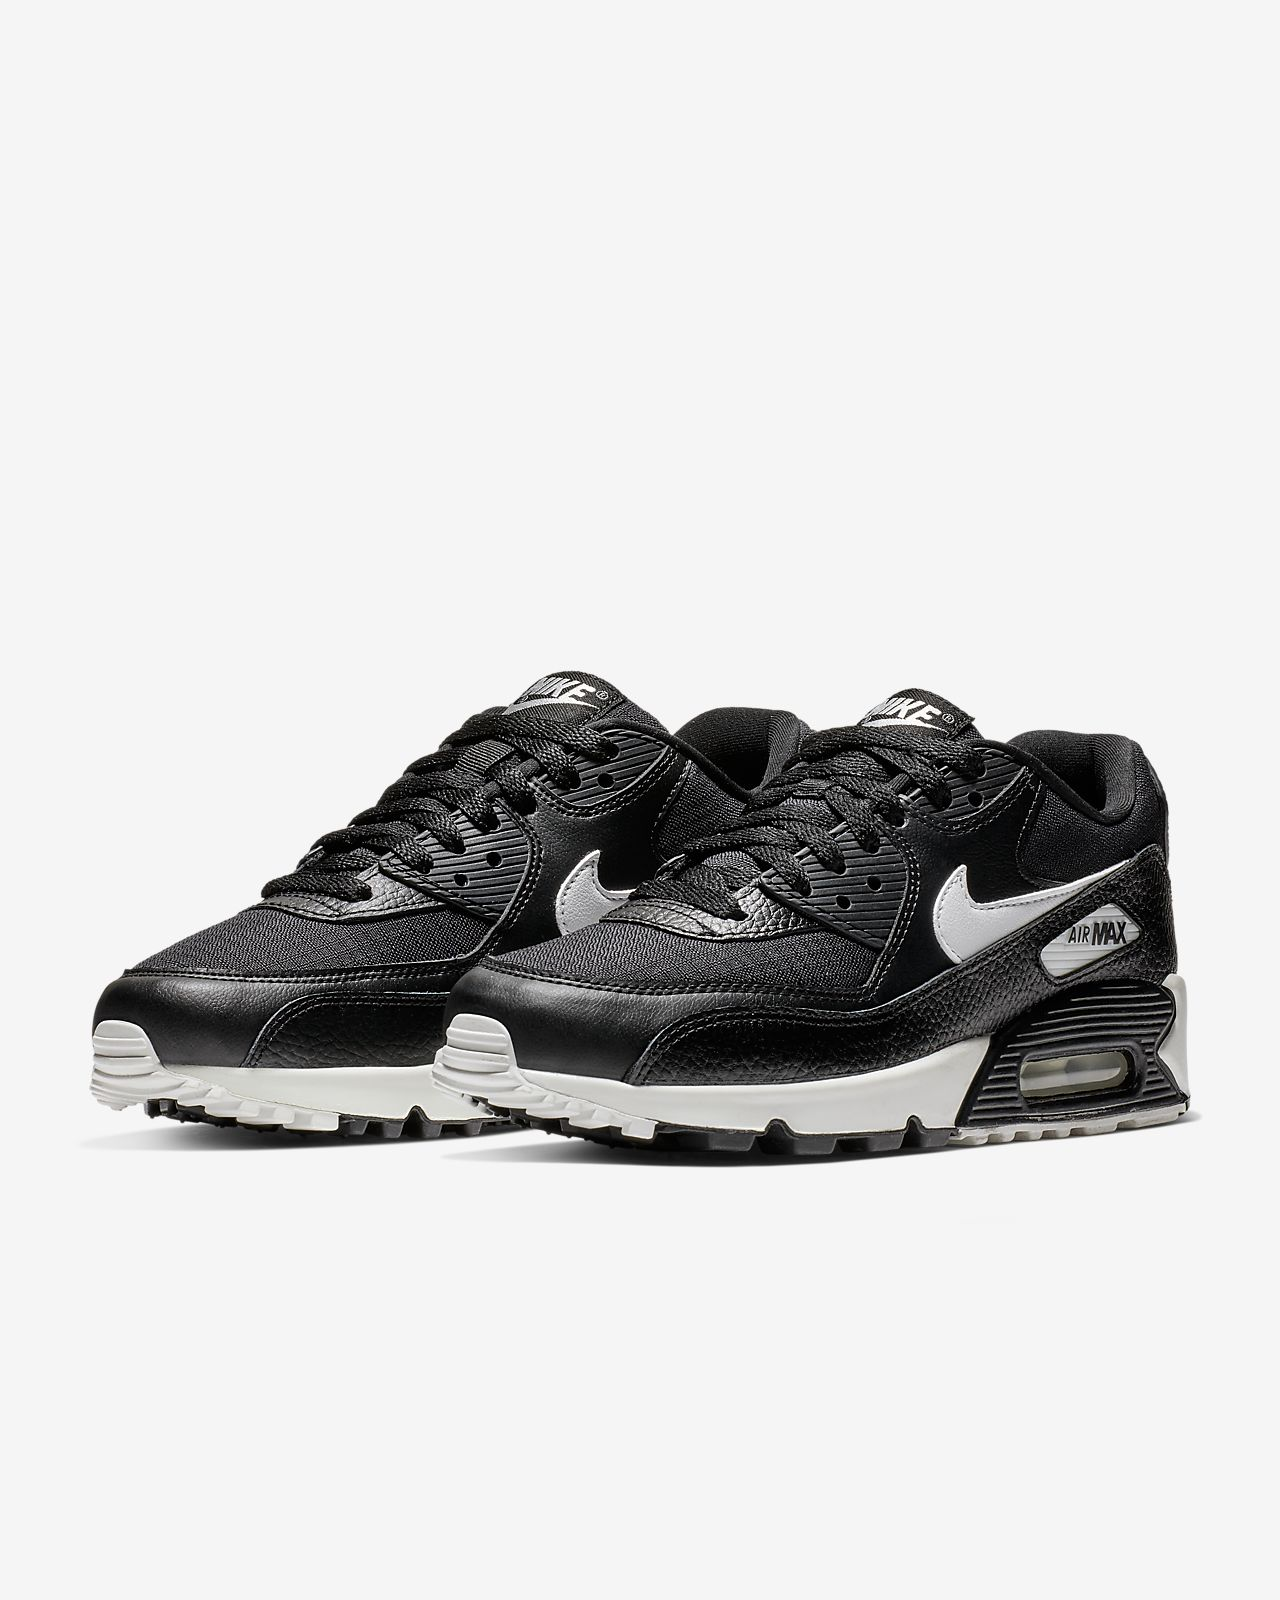 new style 019c9 2e3c0 ... Nike Air Max 90 Women s Shoe